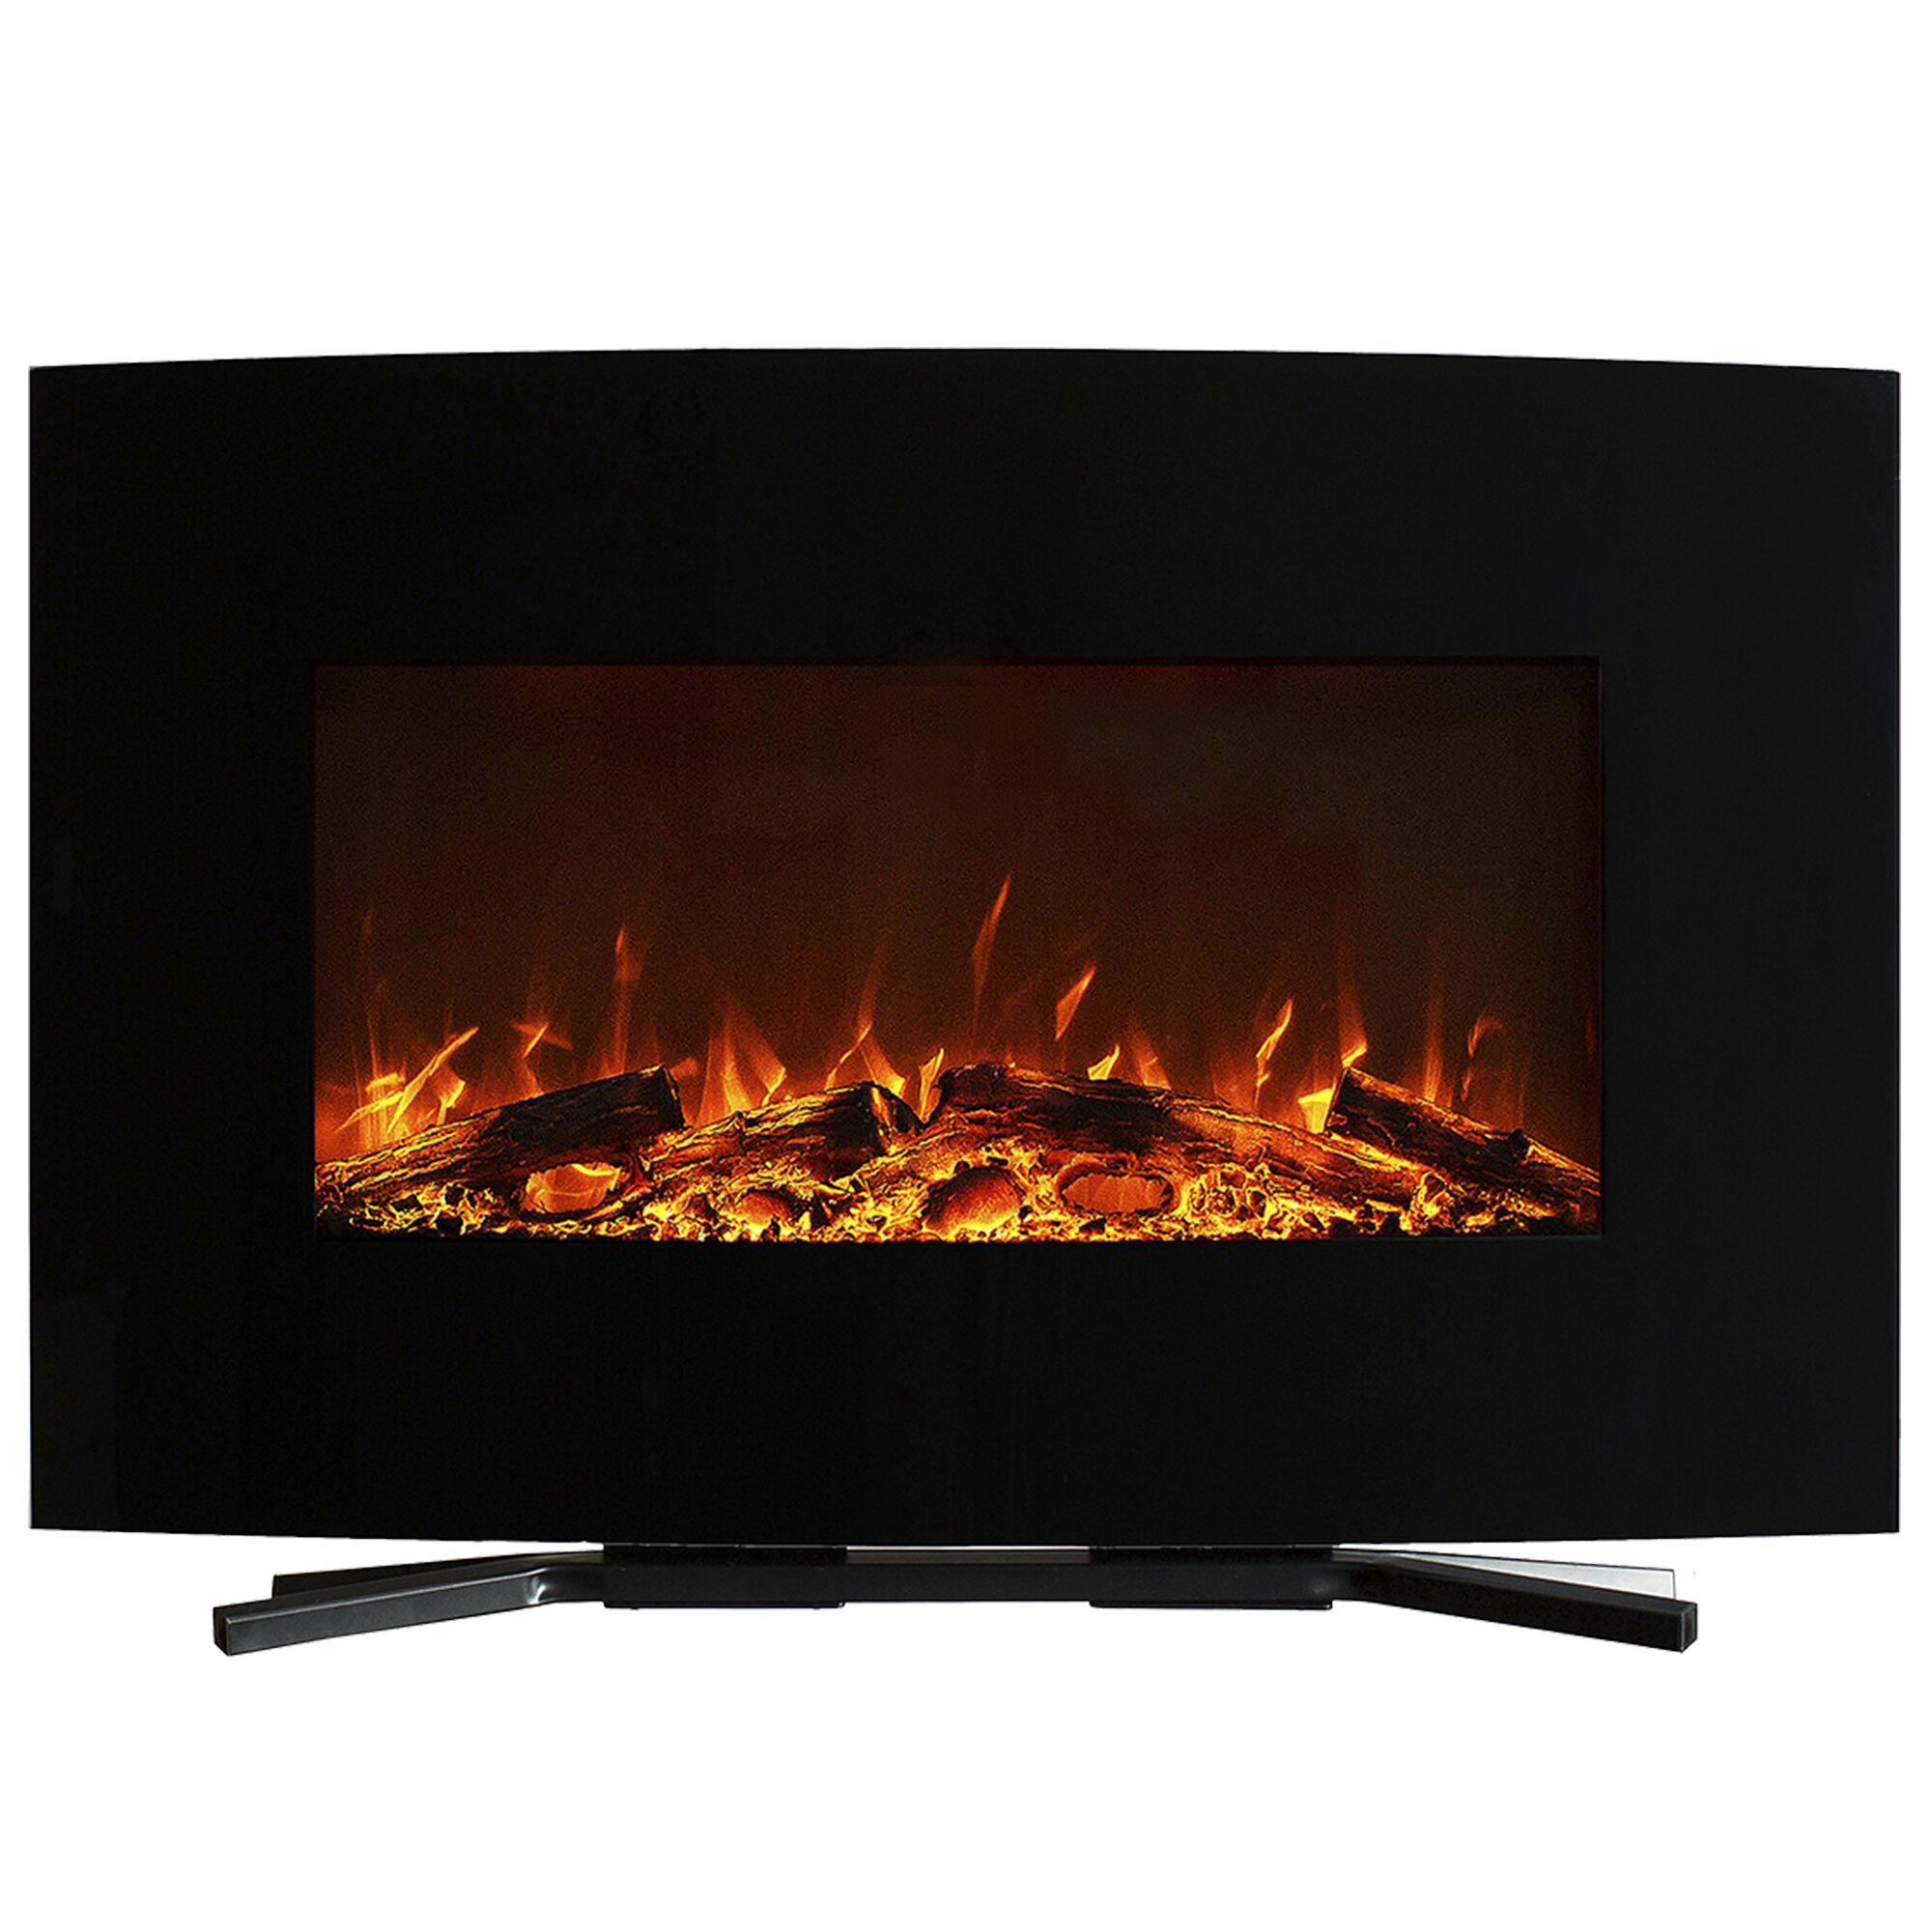 Northwest curved wall mount electric fireplace reviews for 24 wall mount electric fireplace